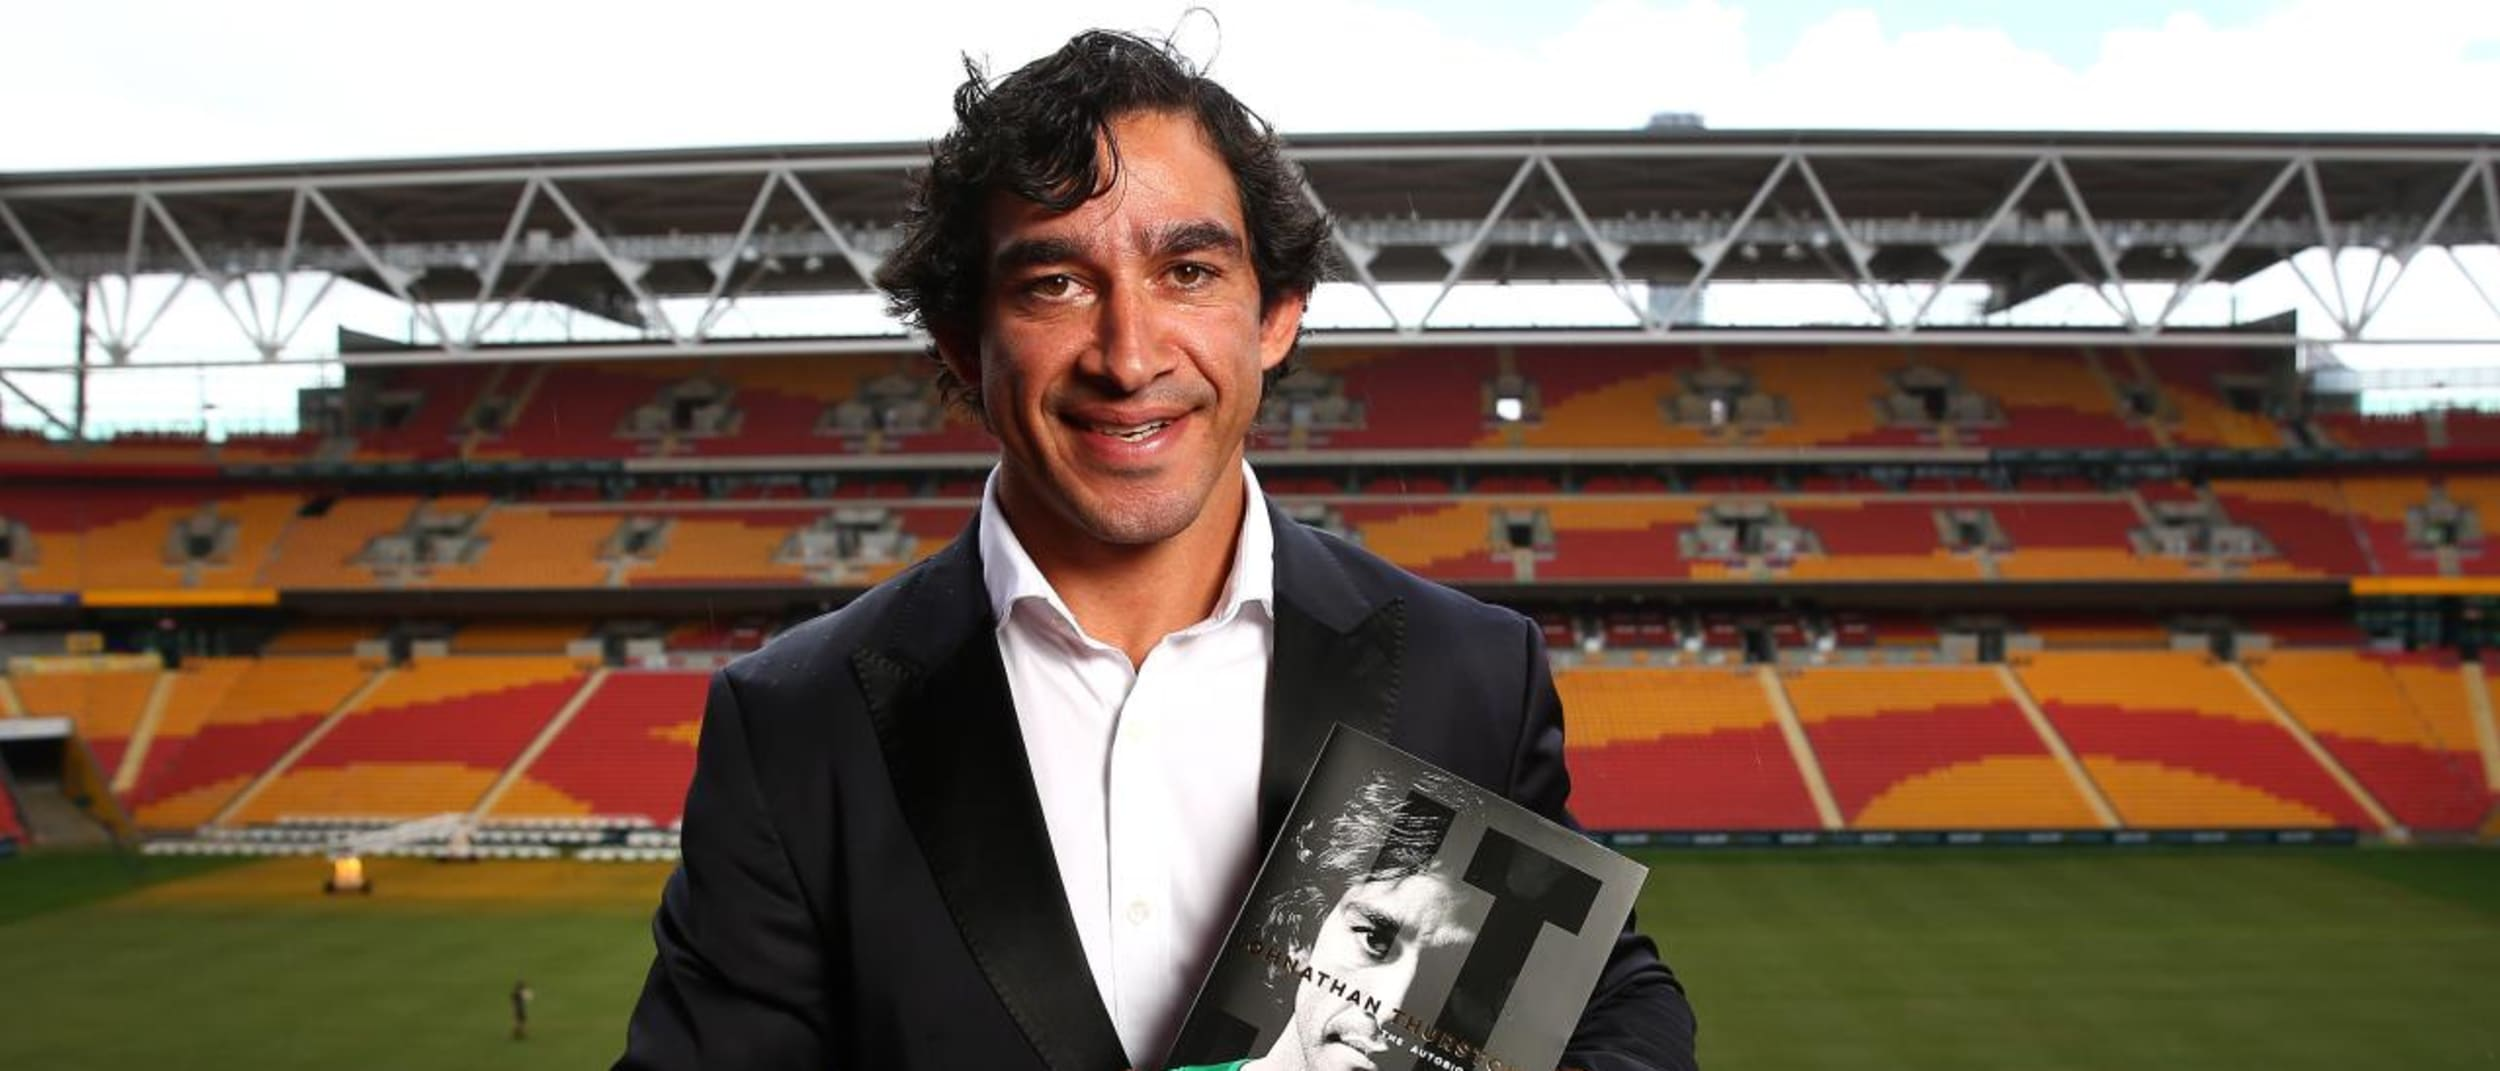 Johnathan Thurston book signing in Centre Court